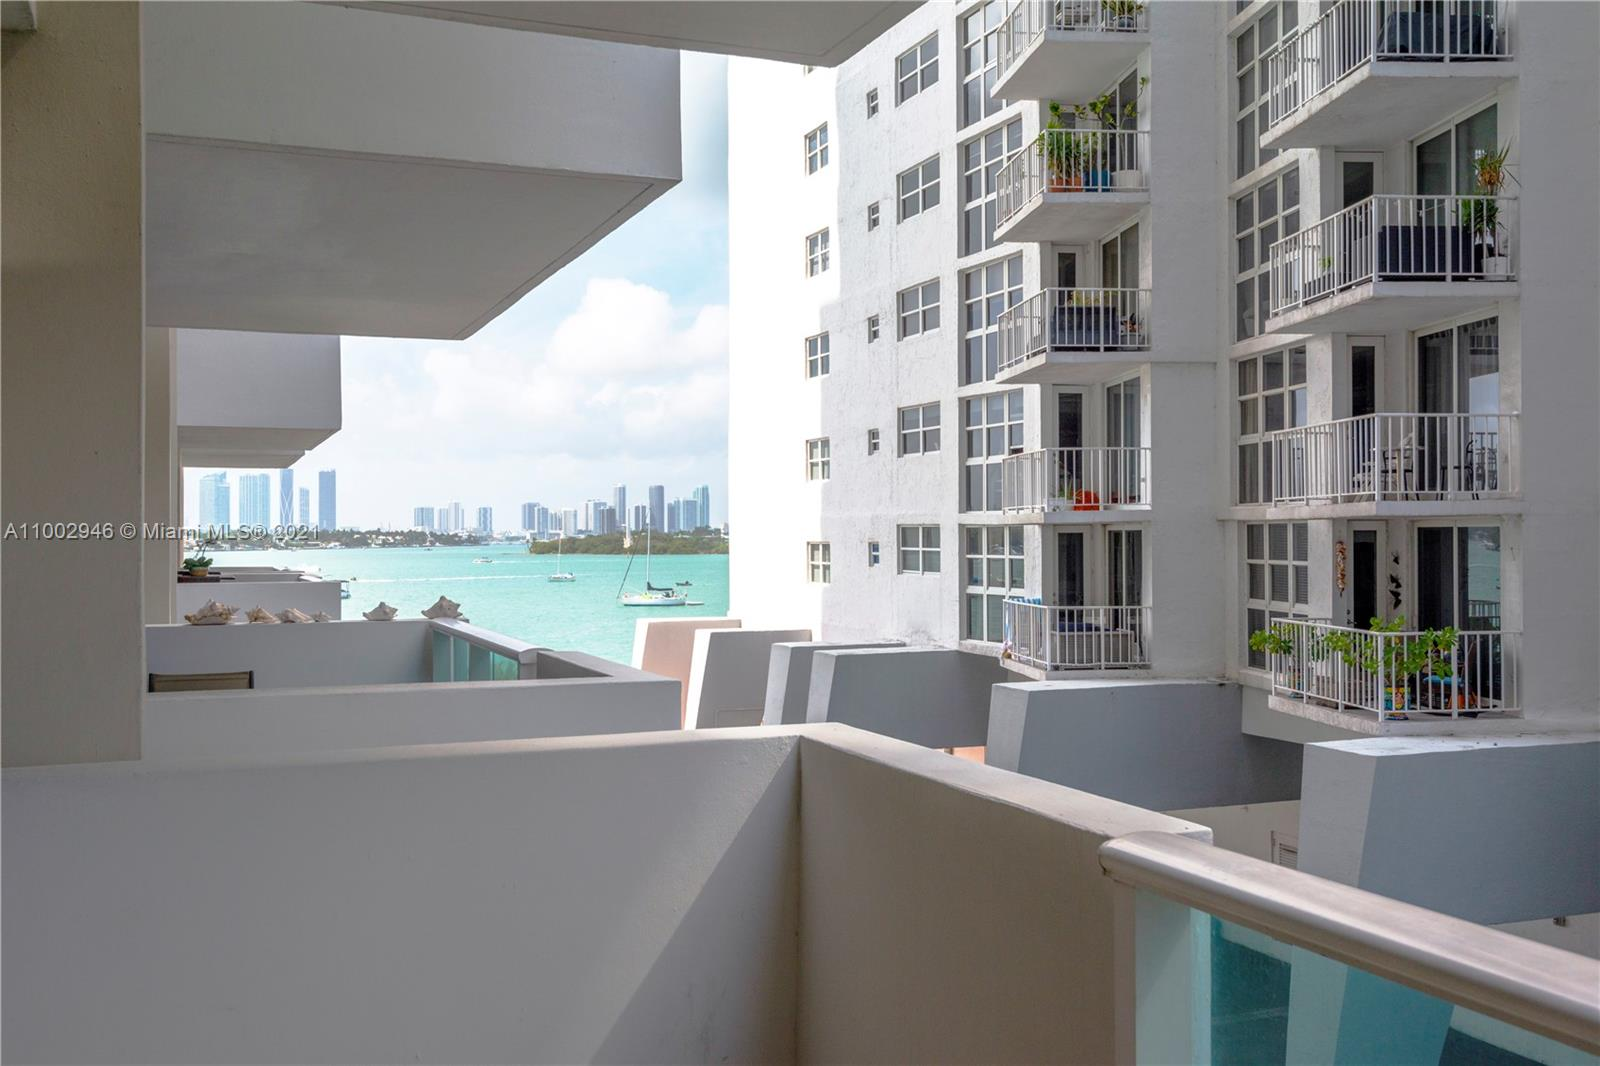 Renovated 1 bedroom/1 bathroom featuring partial West bay views with sunsets! West Ave is a desirable location on the bay, next to the Mondrian, with Whole Foods, Trader Joes, Publix, restaurants, Flamingo Park, Citi-bike Rentals and Lincoln Rd all within walking distance. The building has a wide range of amenities and services including a pool on the bay, gym, jacuzzi, 24-hour front desk, valet parking, convenience store on premises, spa, club room, BBQ area and more.